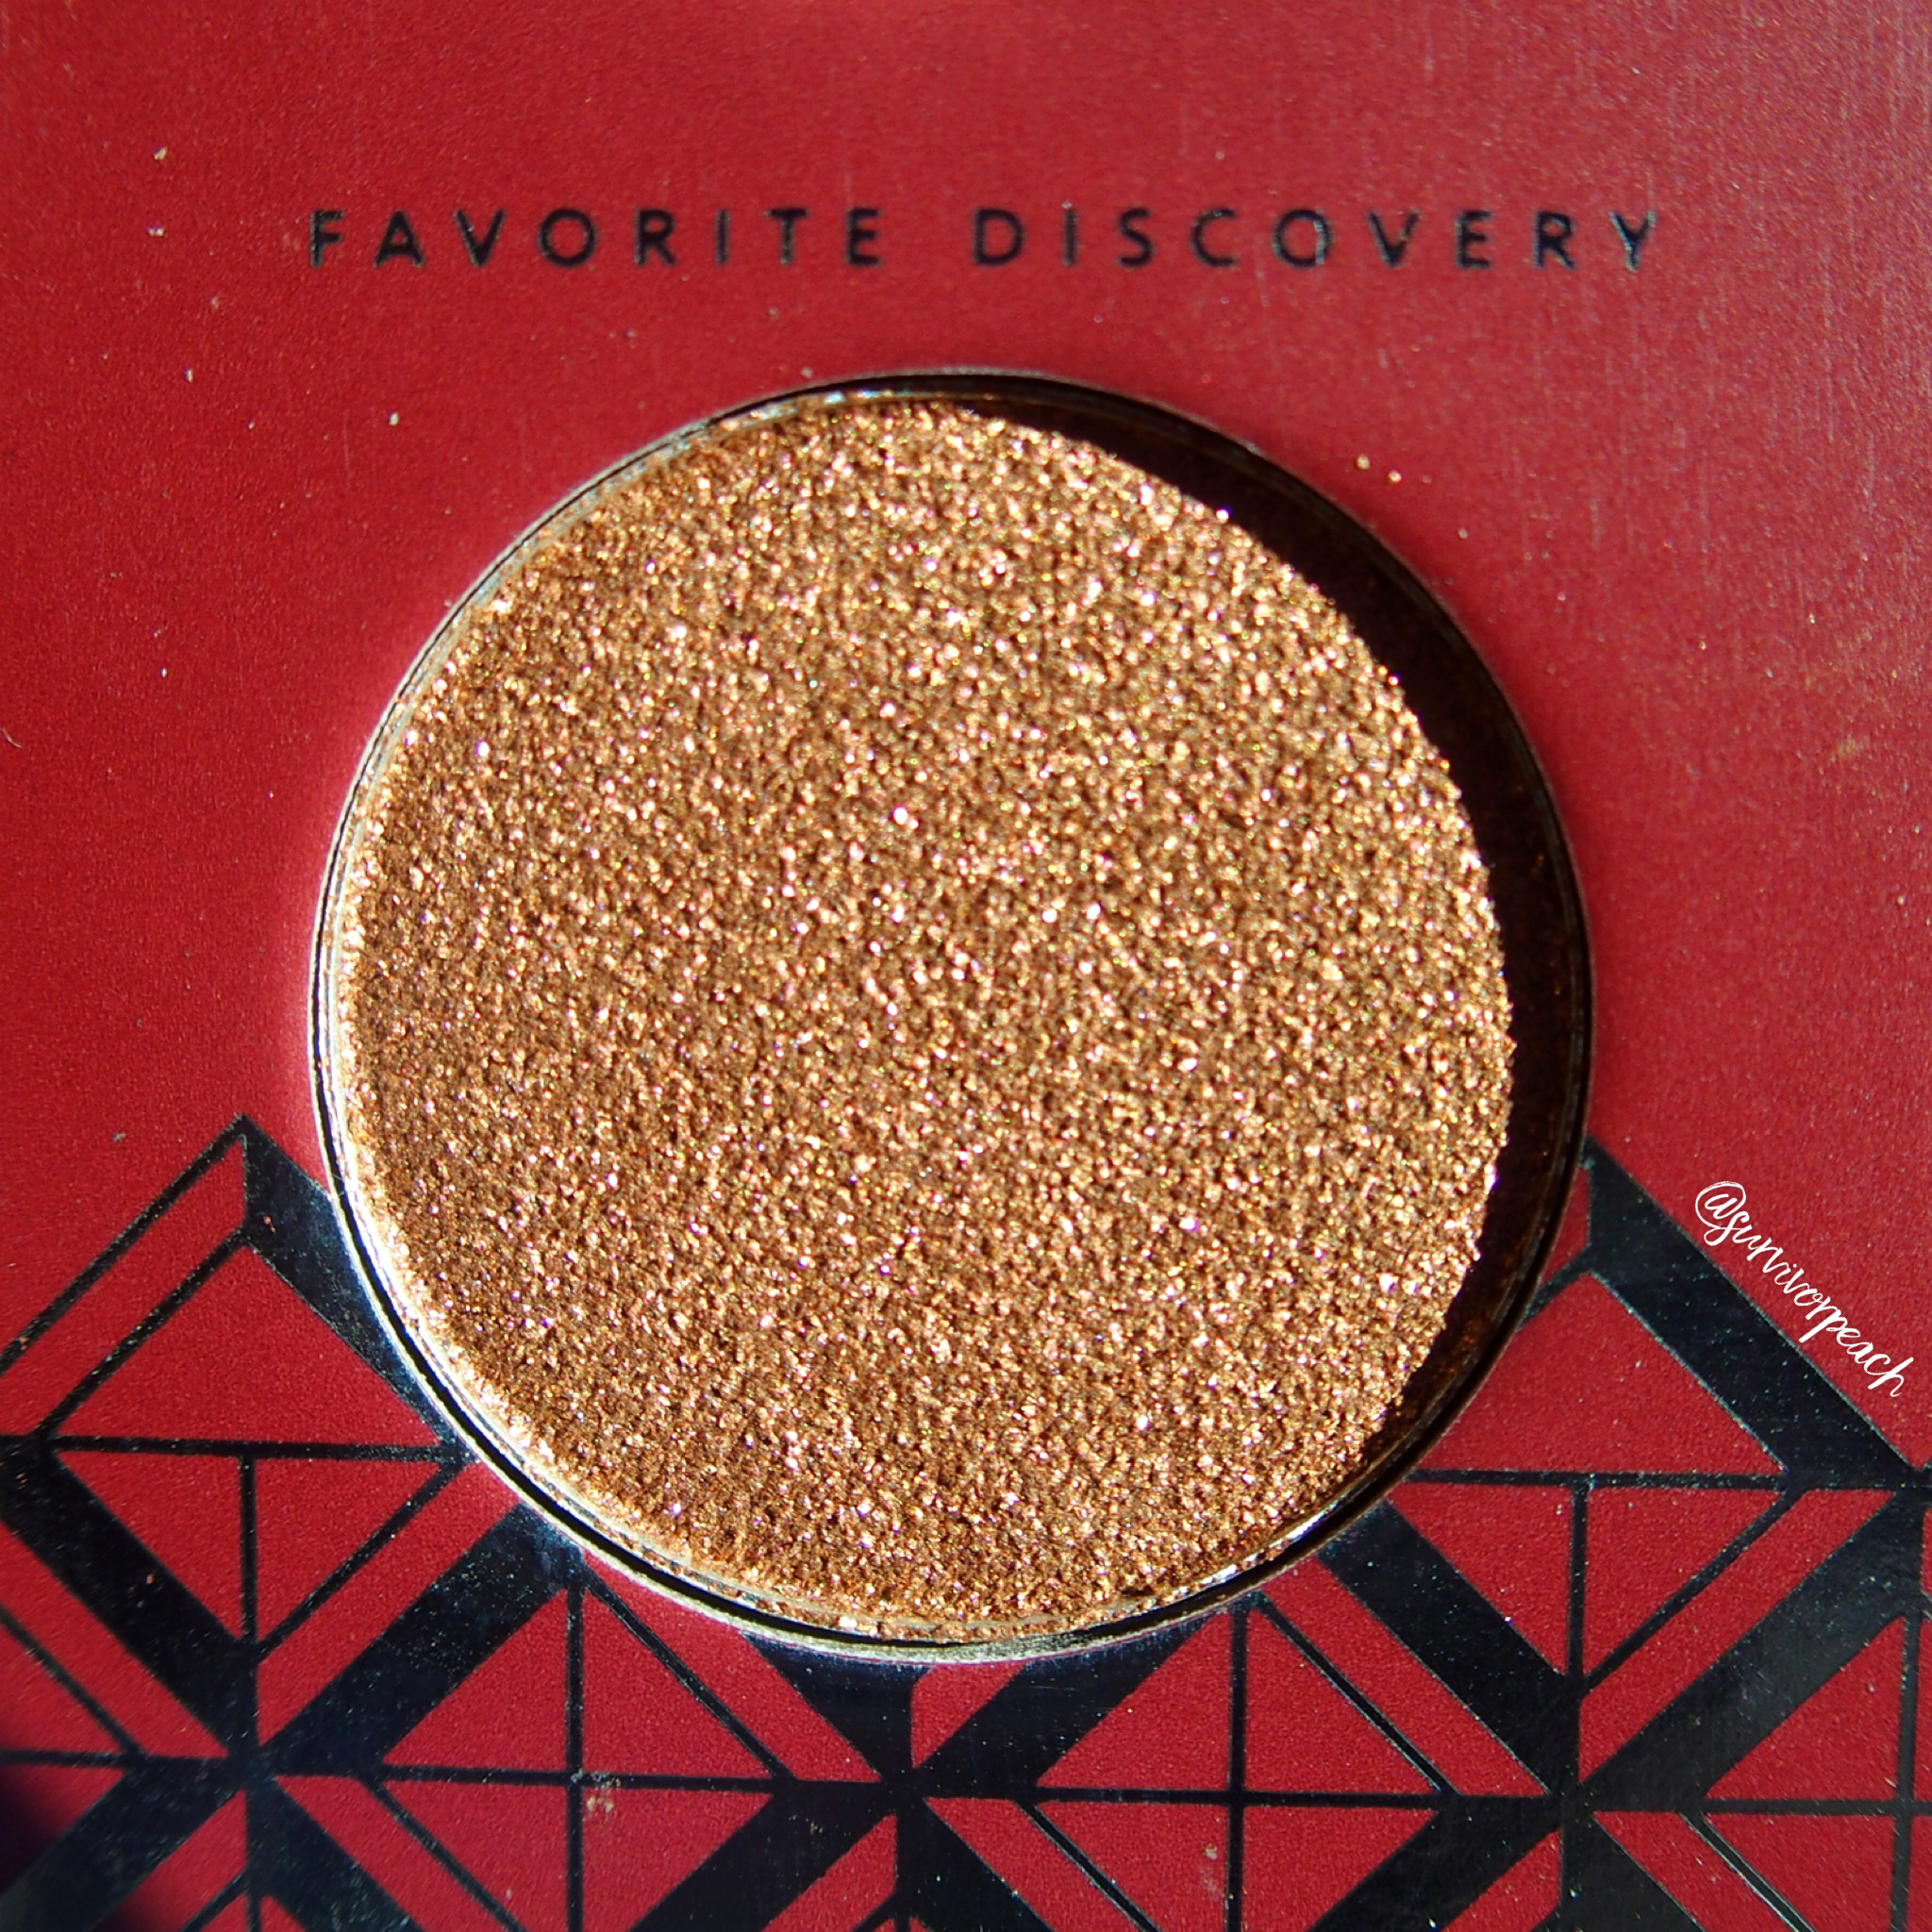 Zoeva Spice of Life Eyeshadow Palette - Favorite Discovery